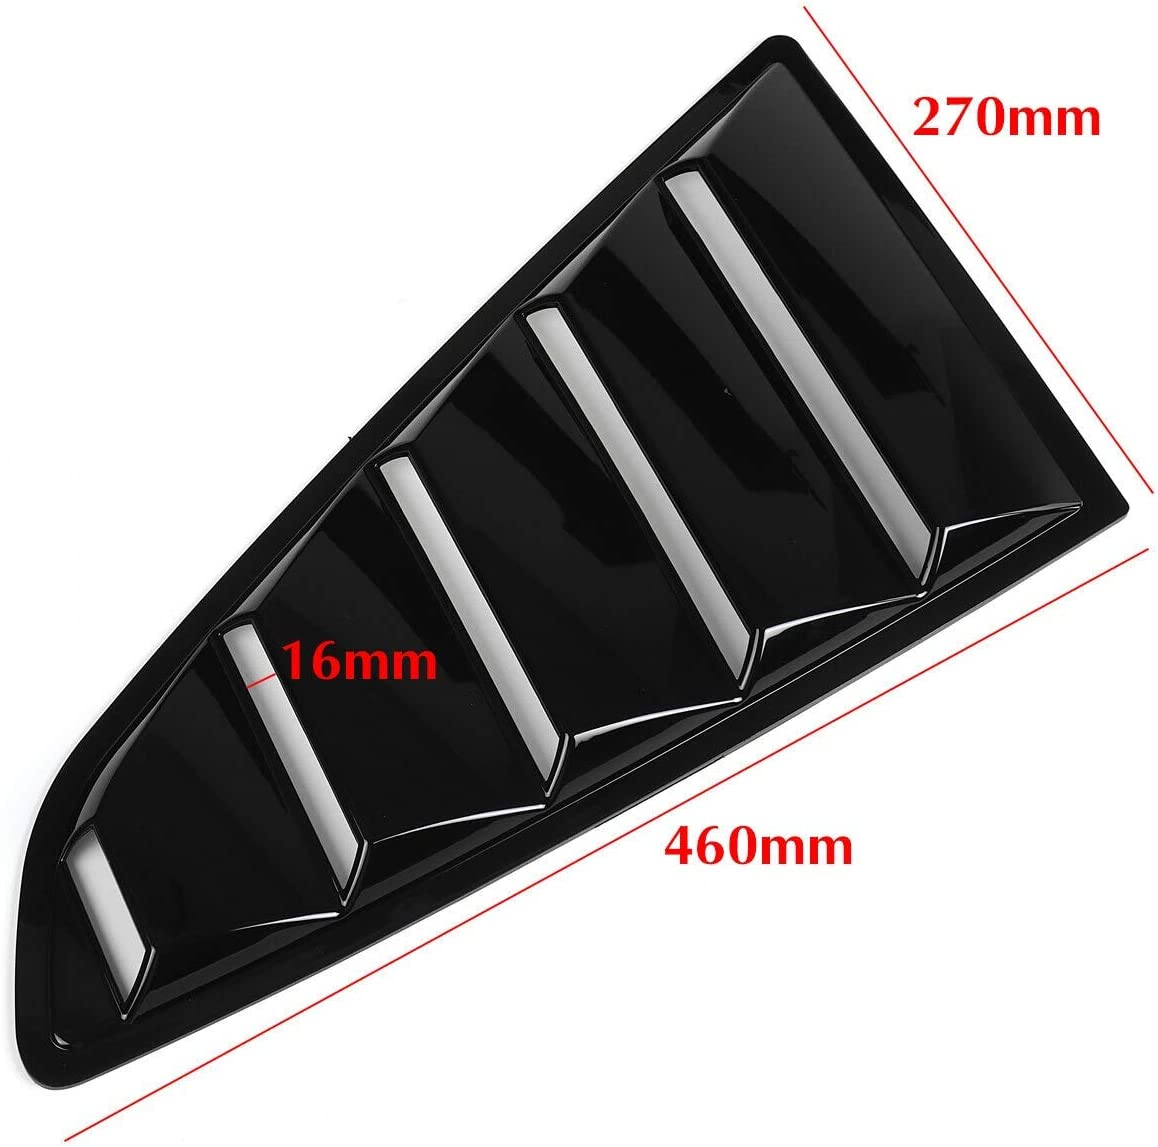 RKRCXH Side Window Louvers Cover 2X Rear Quarter Window Louvers Scoops Spoiler Car Styling Tunning Panel Side Air Vent Cover Sticker Fit For Ford Mustang 2015-2020